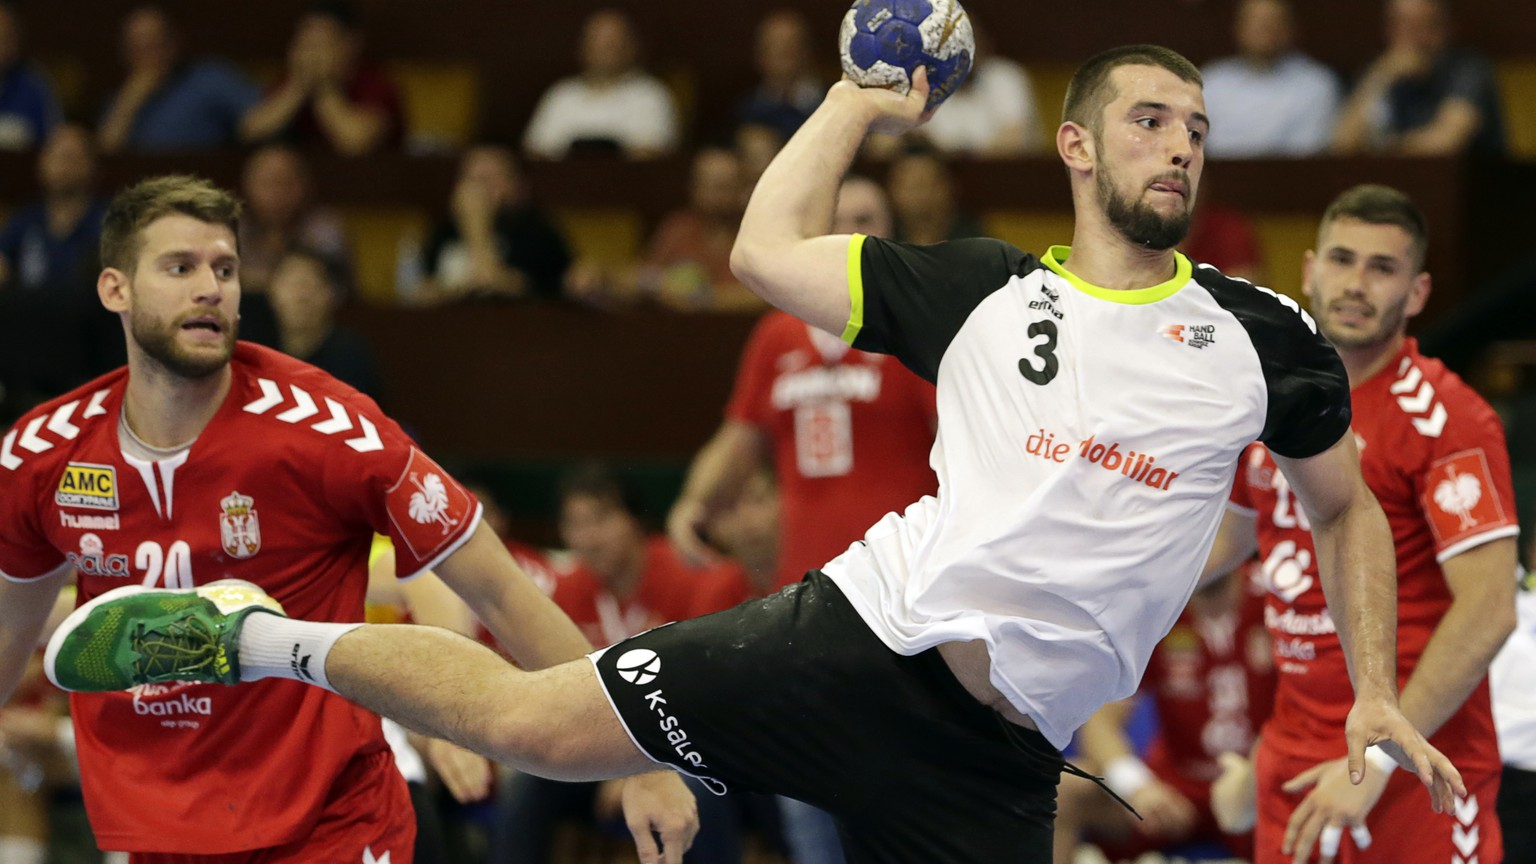 epa07652504 Switzerland's Lucas Meister (R) in action against Serbia's Ivan Mosic (L) during the Men's Handball European Championship 2020 qualification match between Serbia and Switzerland in Novi Sad, Serbia, 16 June 2019.  EPA/ANDREJ CUKIC